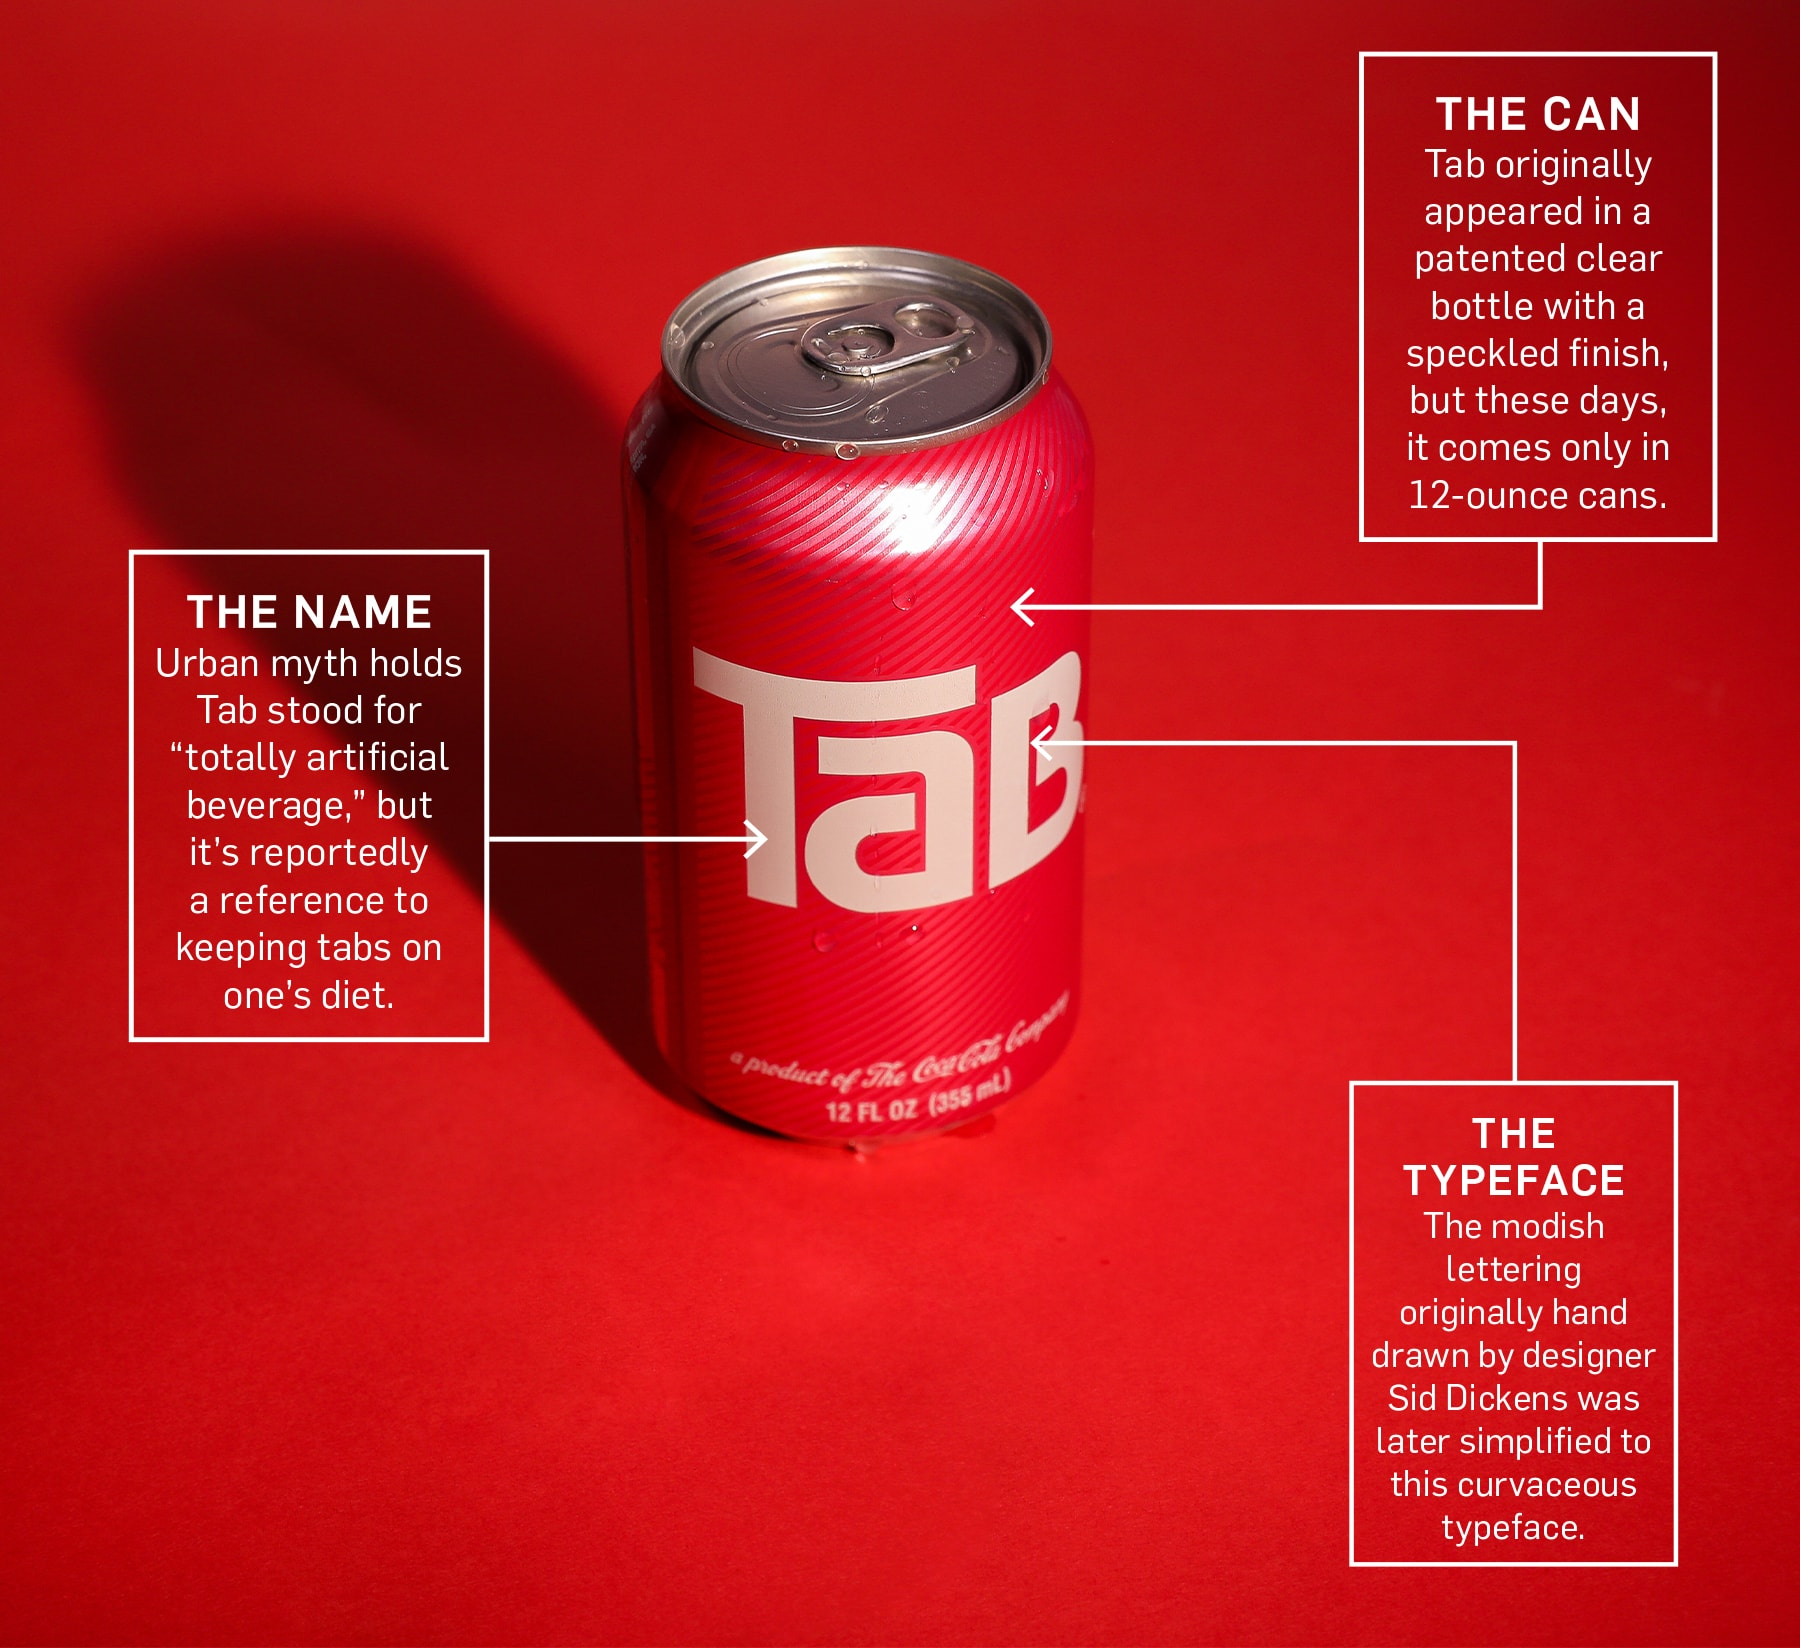 Tab Accounts for Just 1% of Coca-Cola's Sales, So Why Is It Still Around? – Adweek